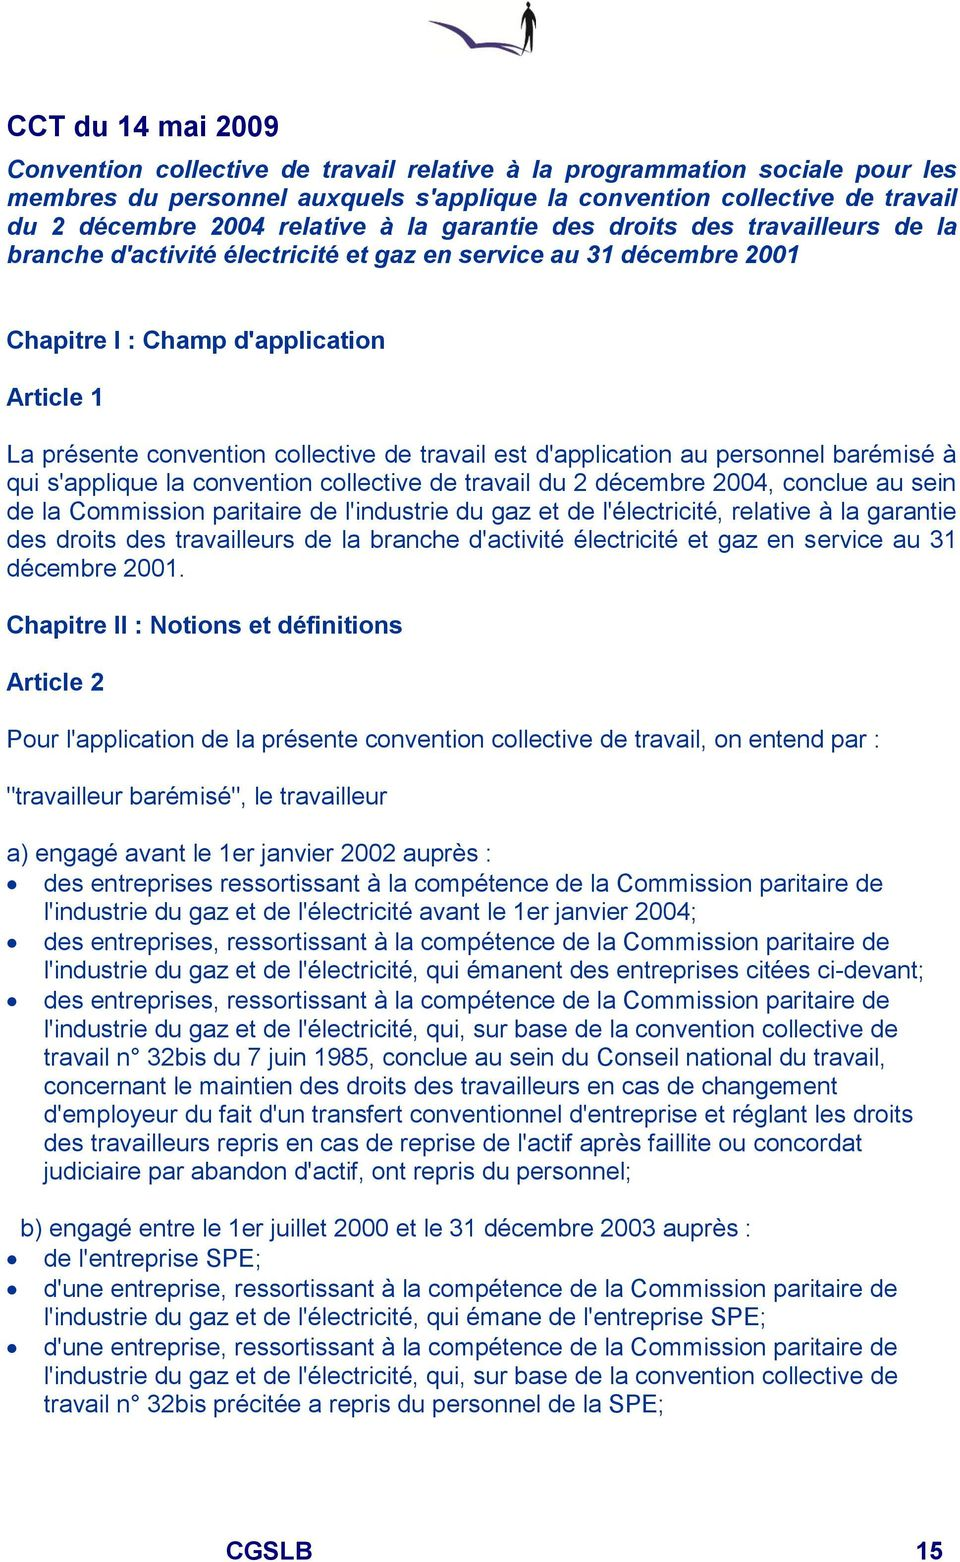 collective de travail est d'application au personnel barémisé à qui s'applique la convention collective de travail du 2 décembre 2004, conclue au sein de la Commission paritaire de l'industrie du gaz